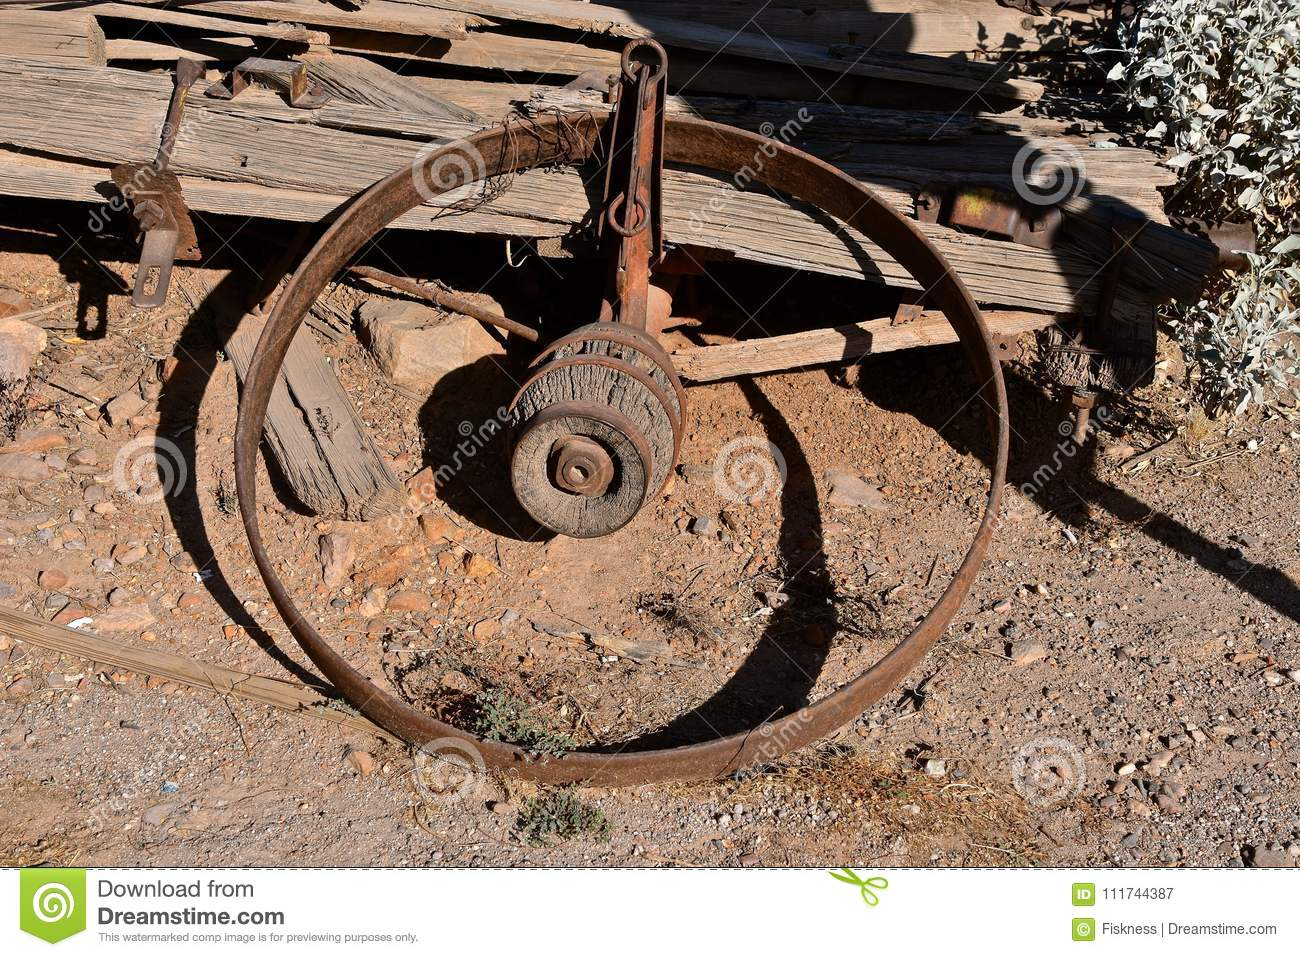 Rim And Hub Of An Old Wooden Wagon Stock Image - Image of